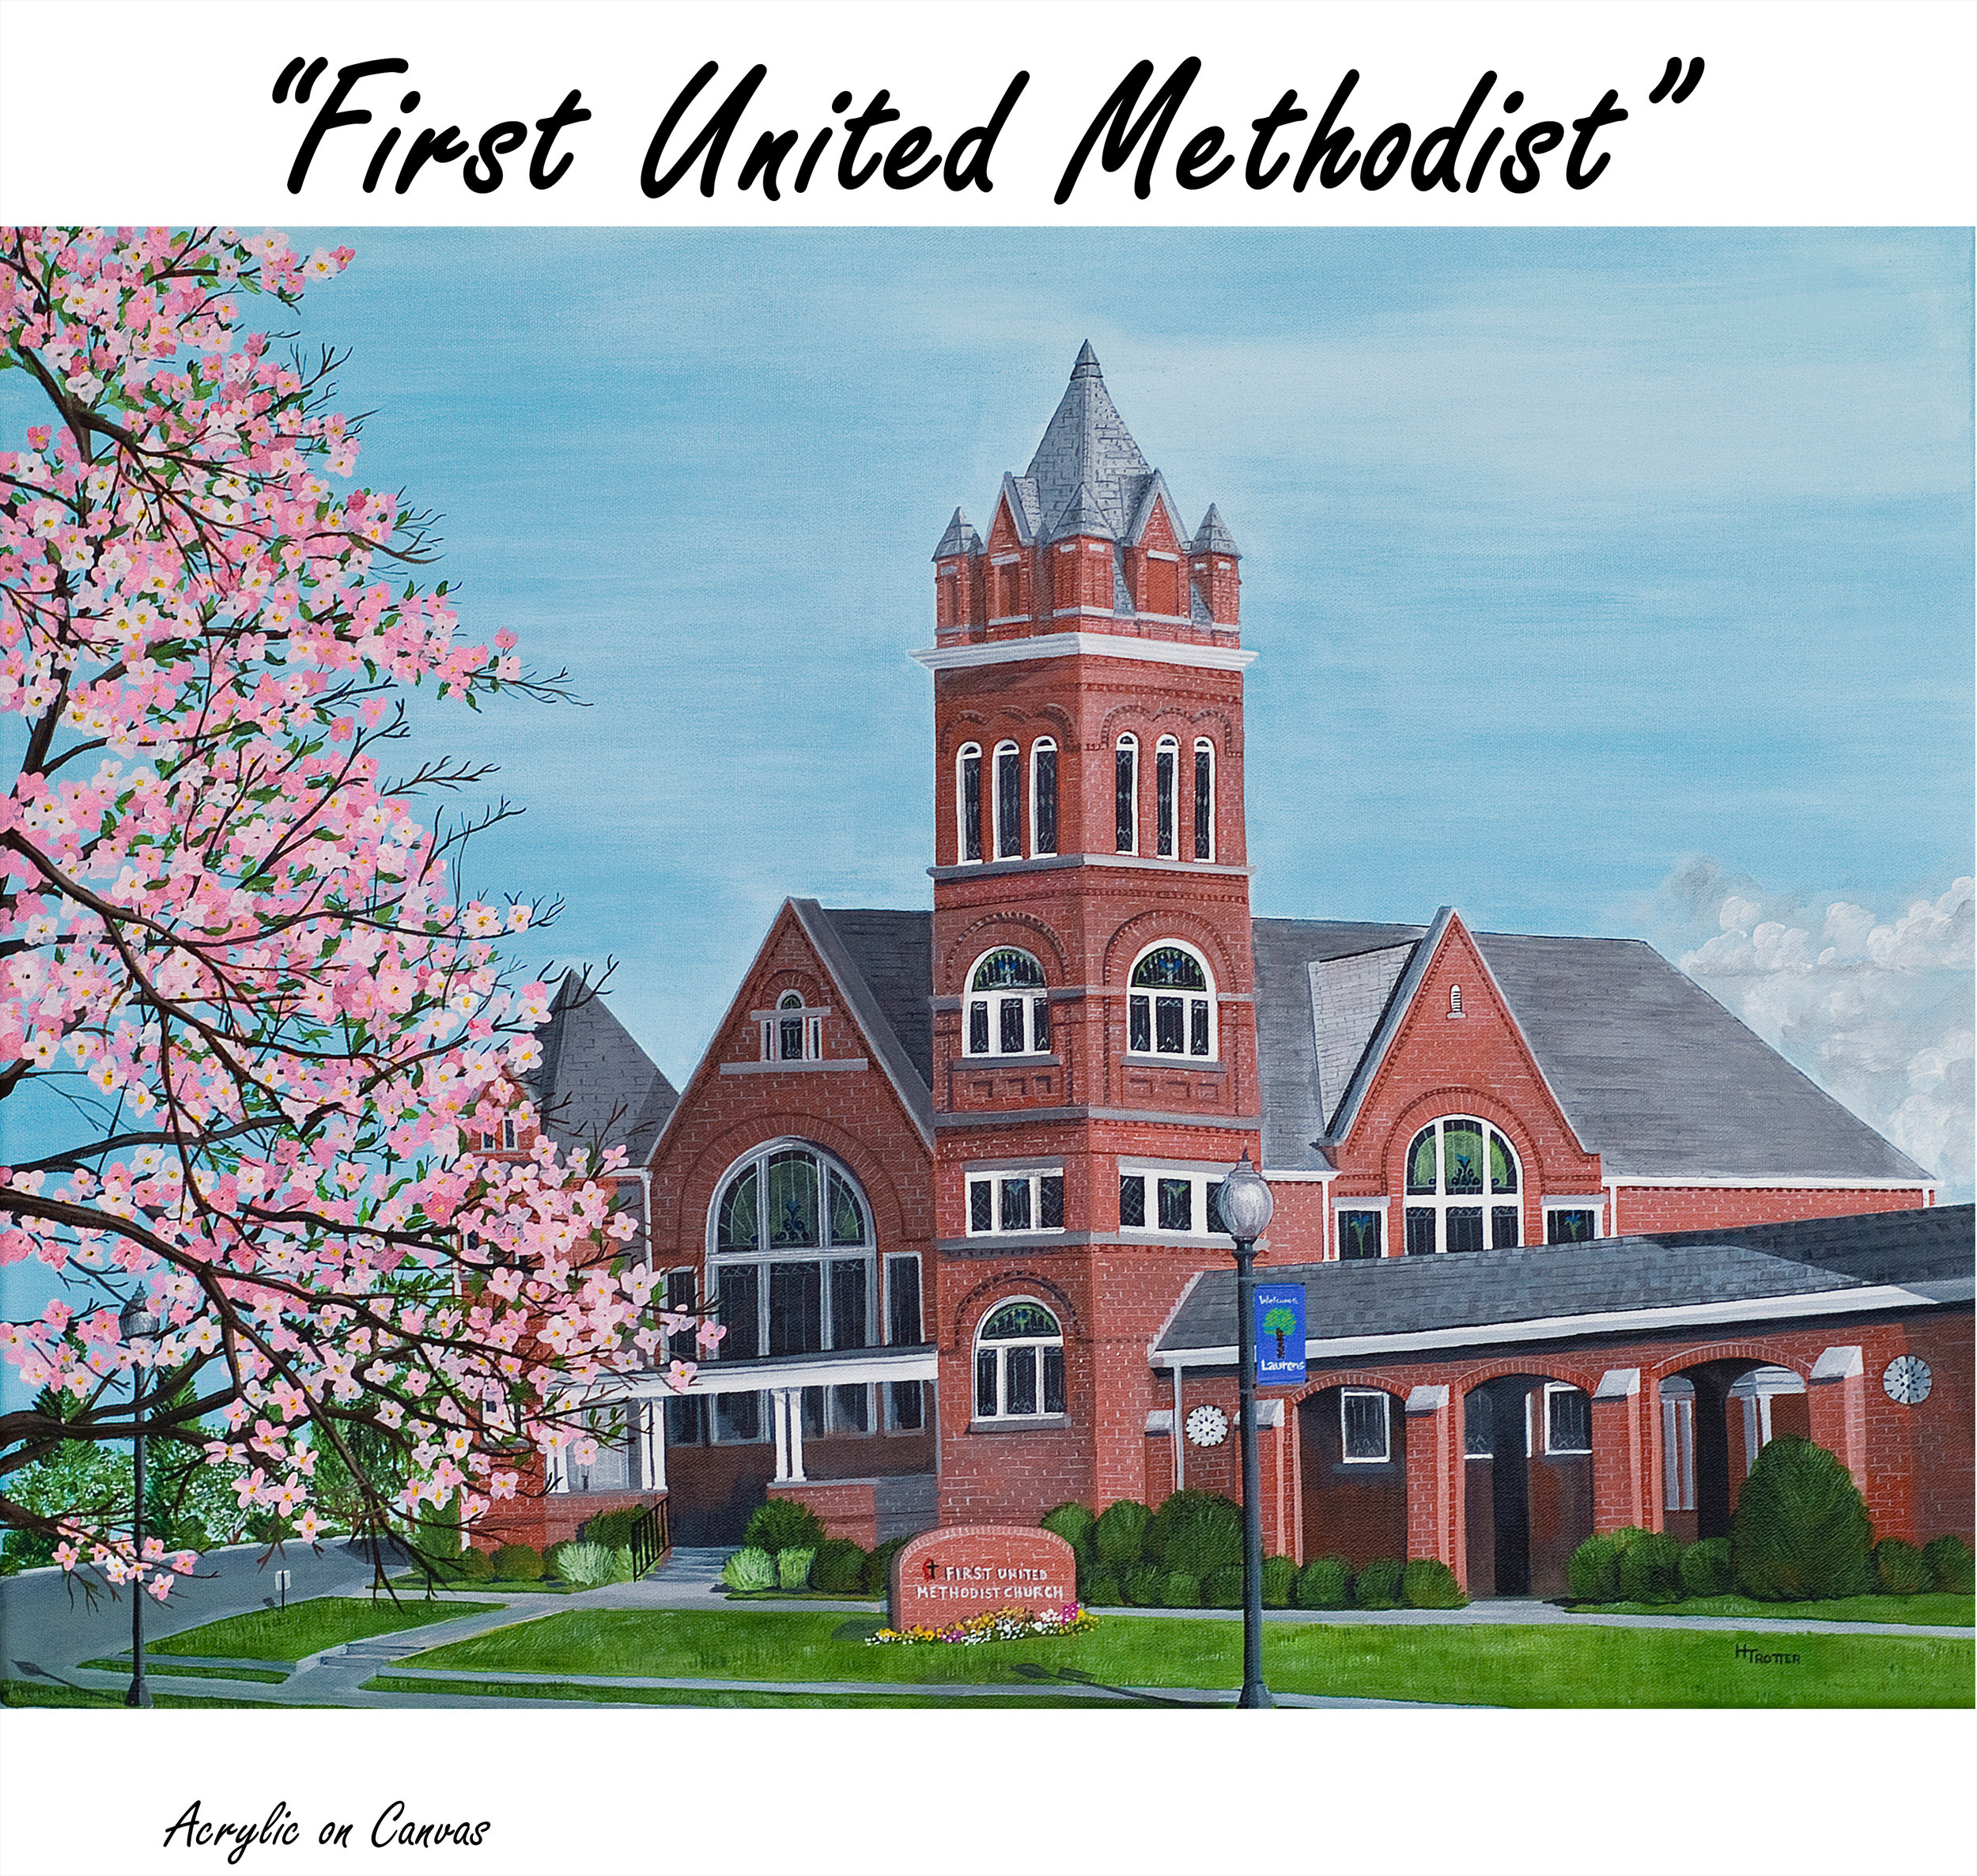 First united Methodist.jpg